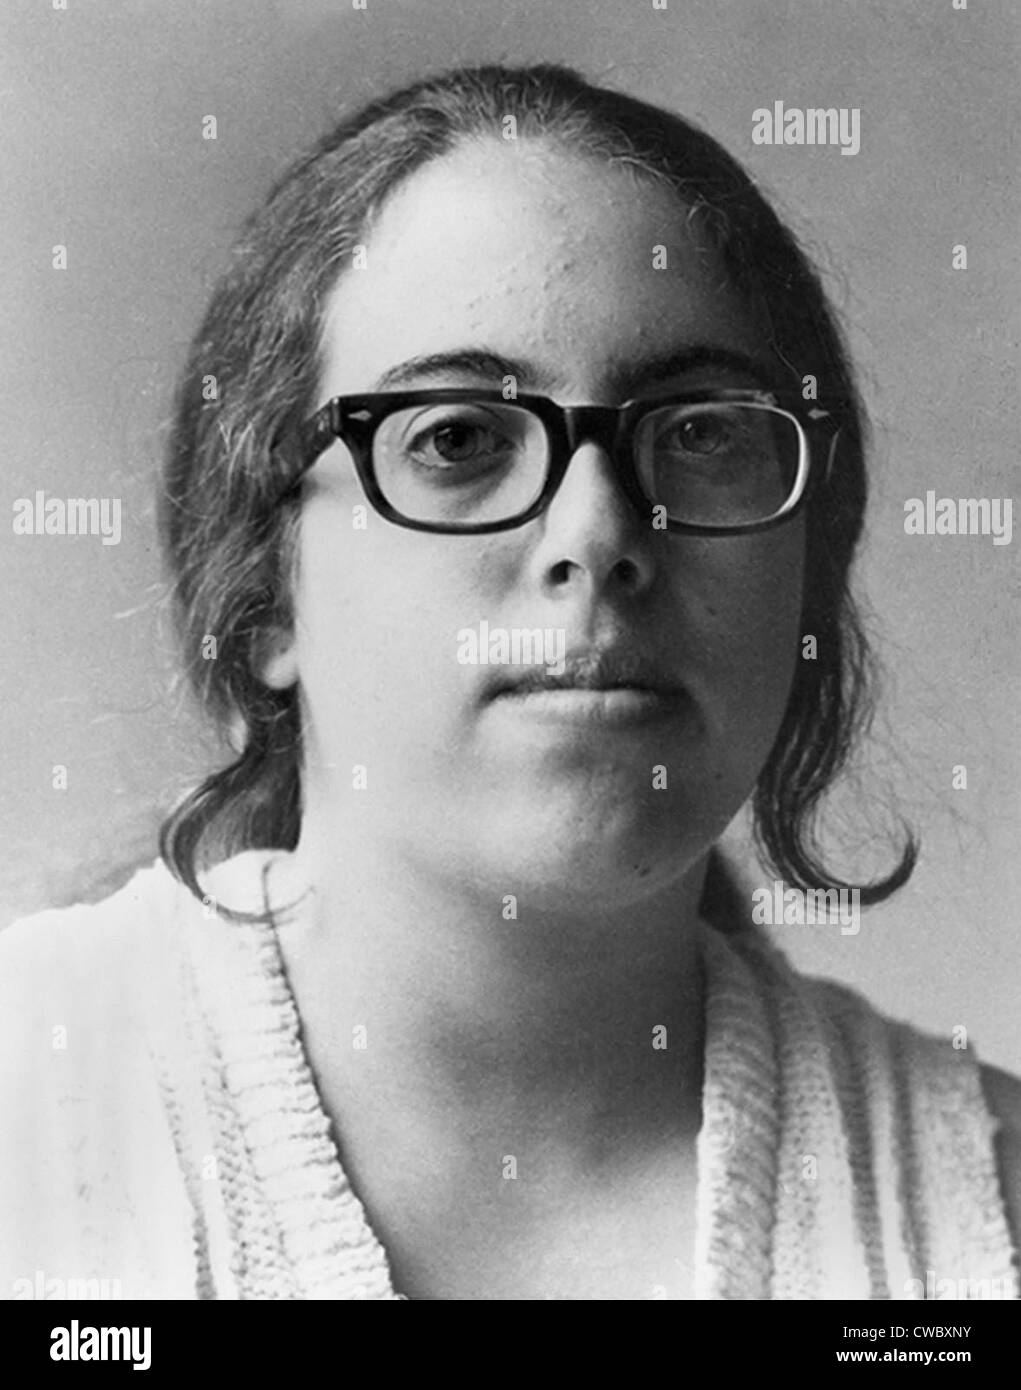 Susan E. Saxe was a 1970s radical and anarchist, who with Katherine Ann Power, robbed a bank and committed manslaughter - Stock Image